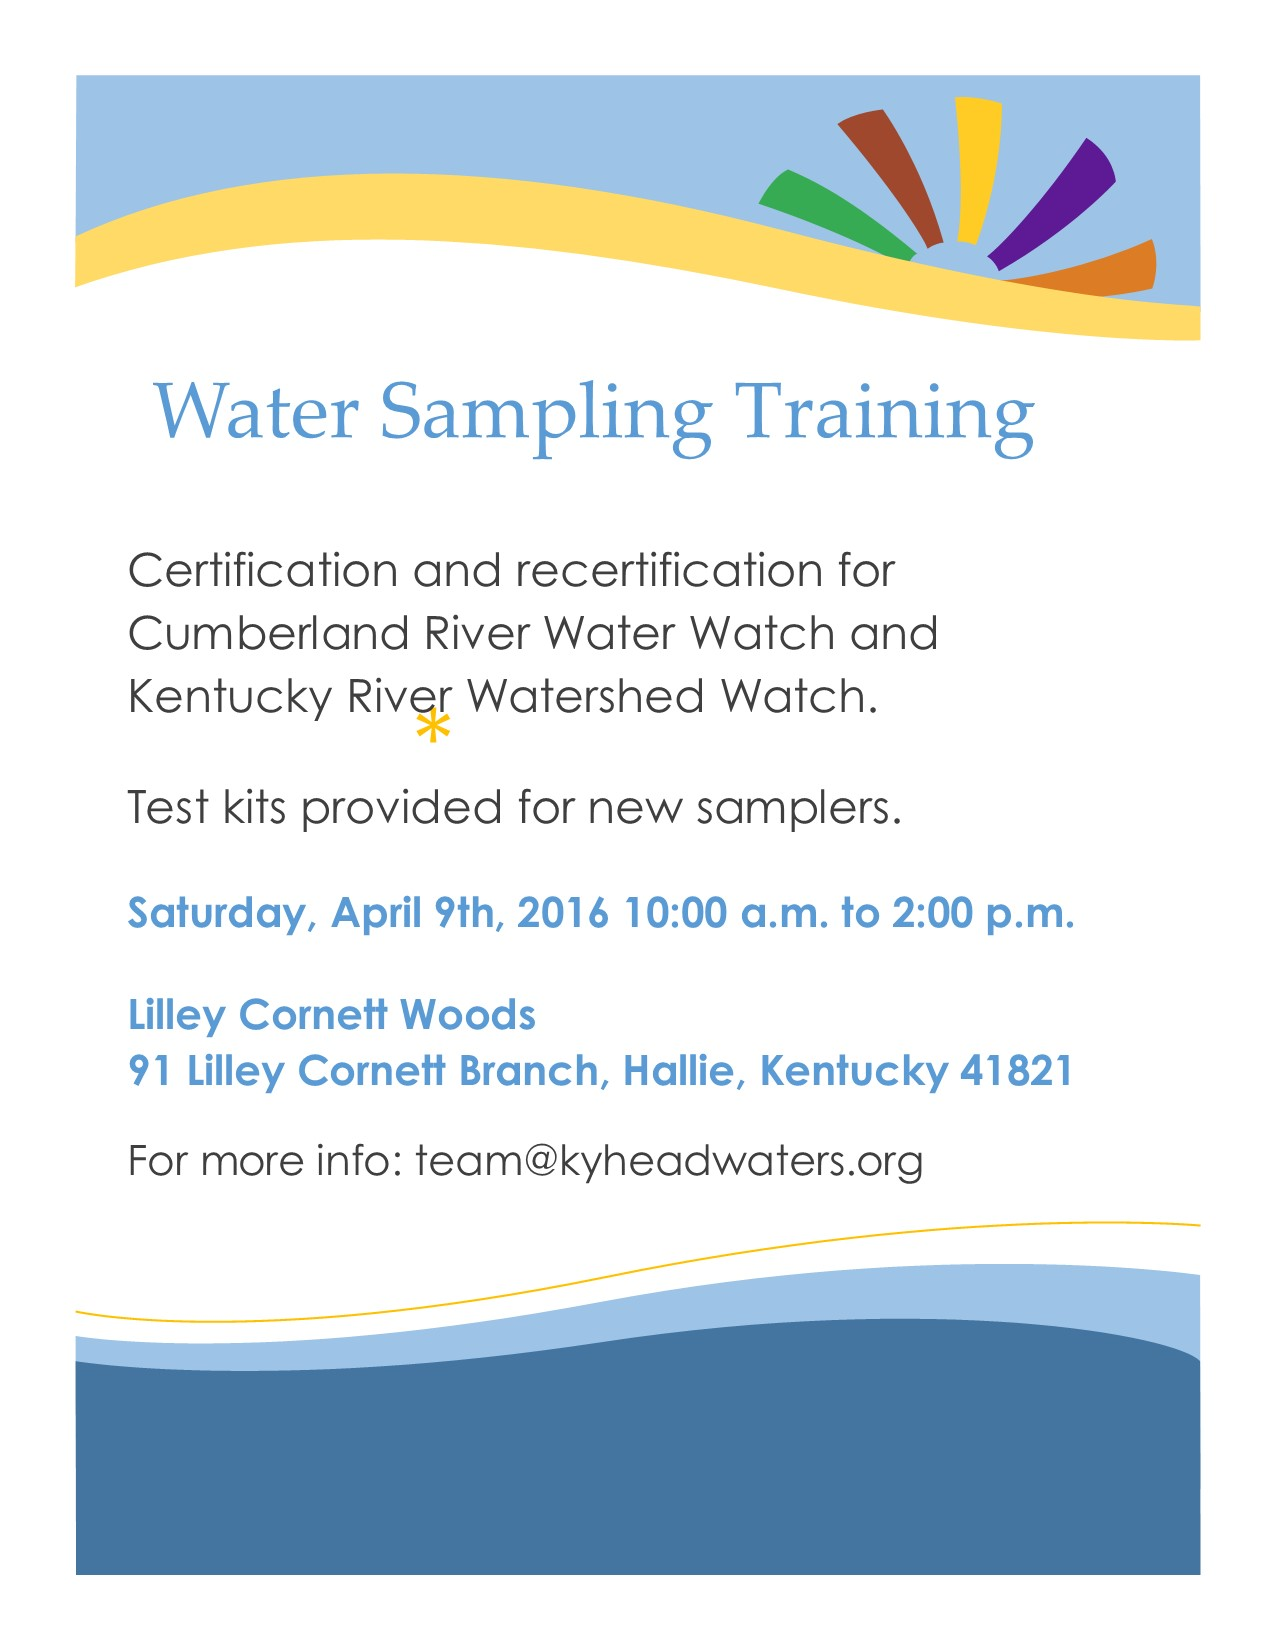 Certification for water sampling offered join in a water sampling training with headwaters in order to become certified or re certified to sample local stream water those in attendance at the 1betcityfo Images